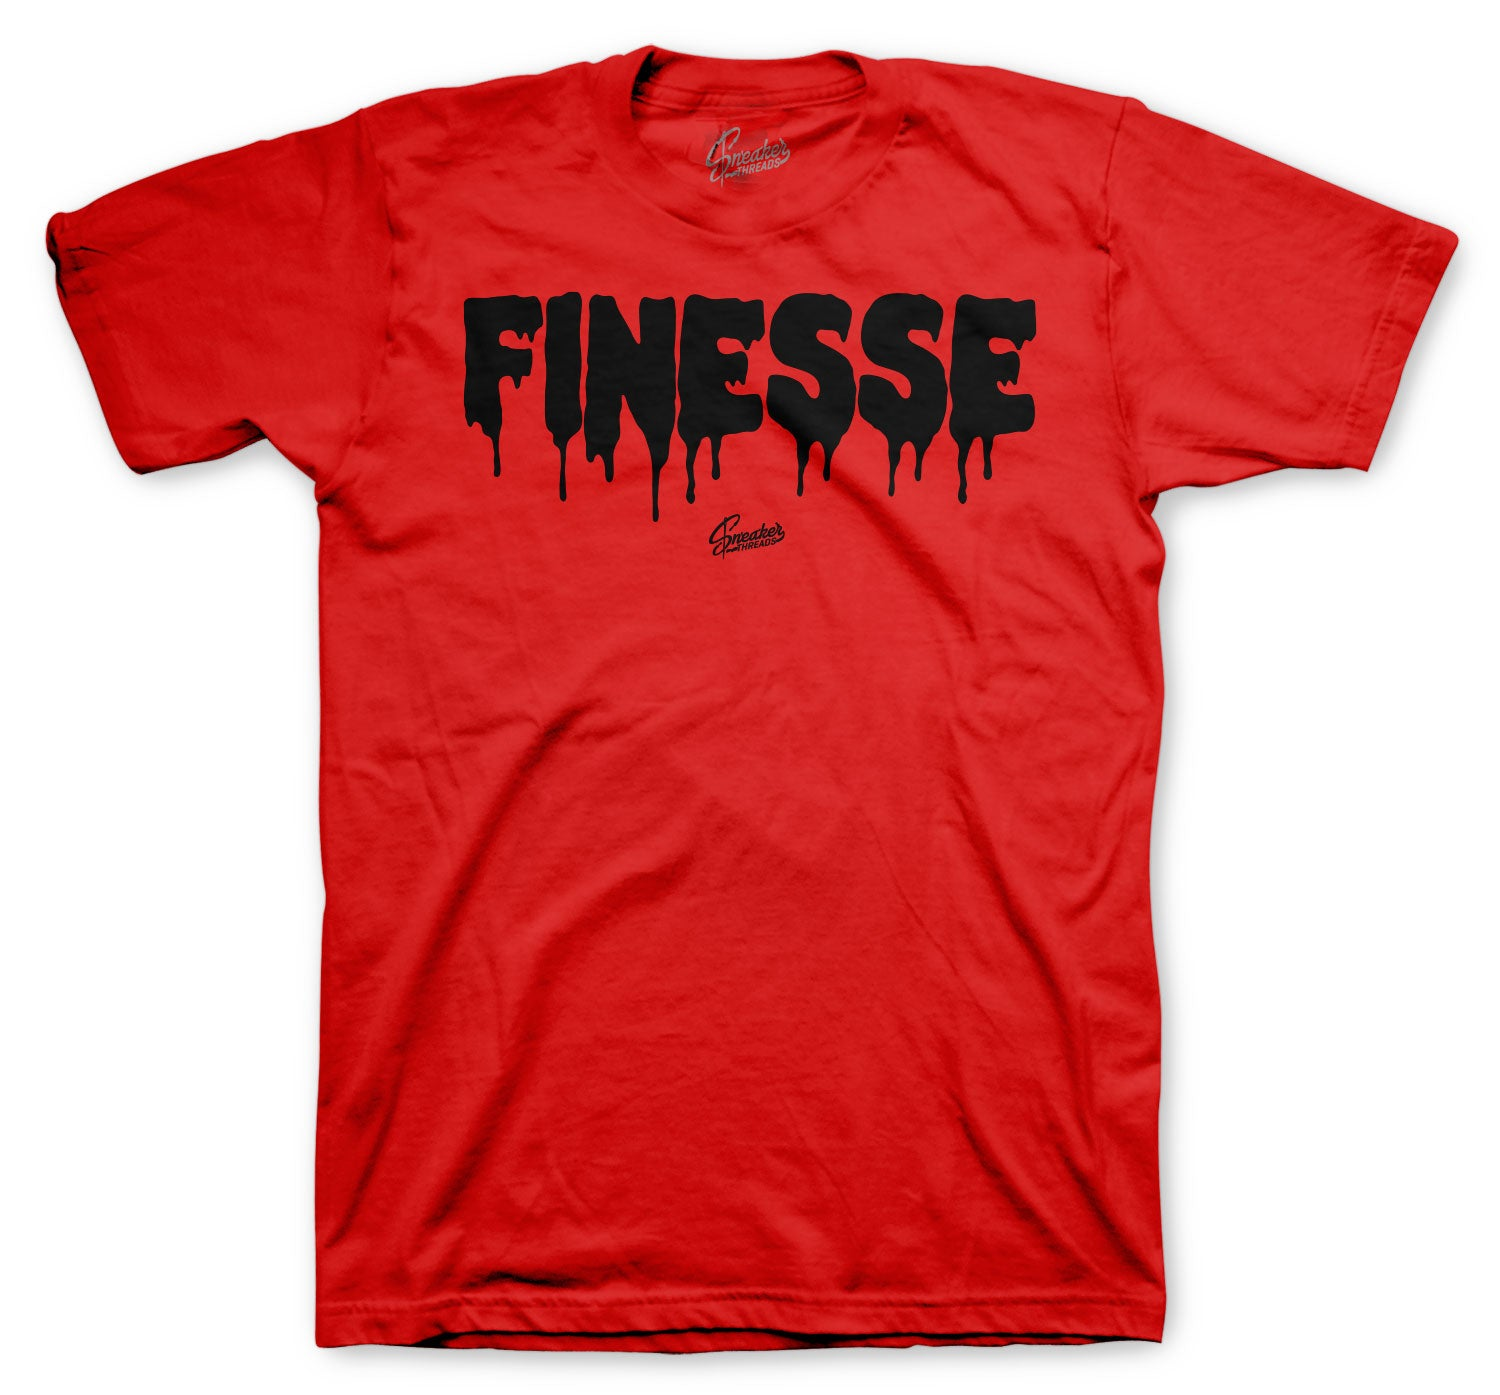 Yeezy 350 Bred Finesse Shirt